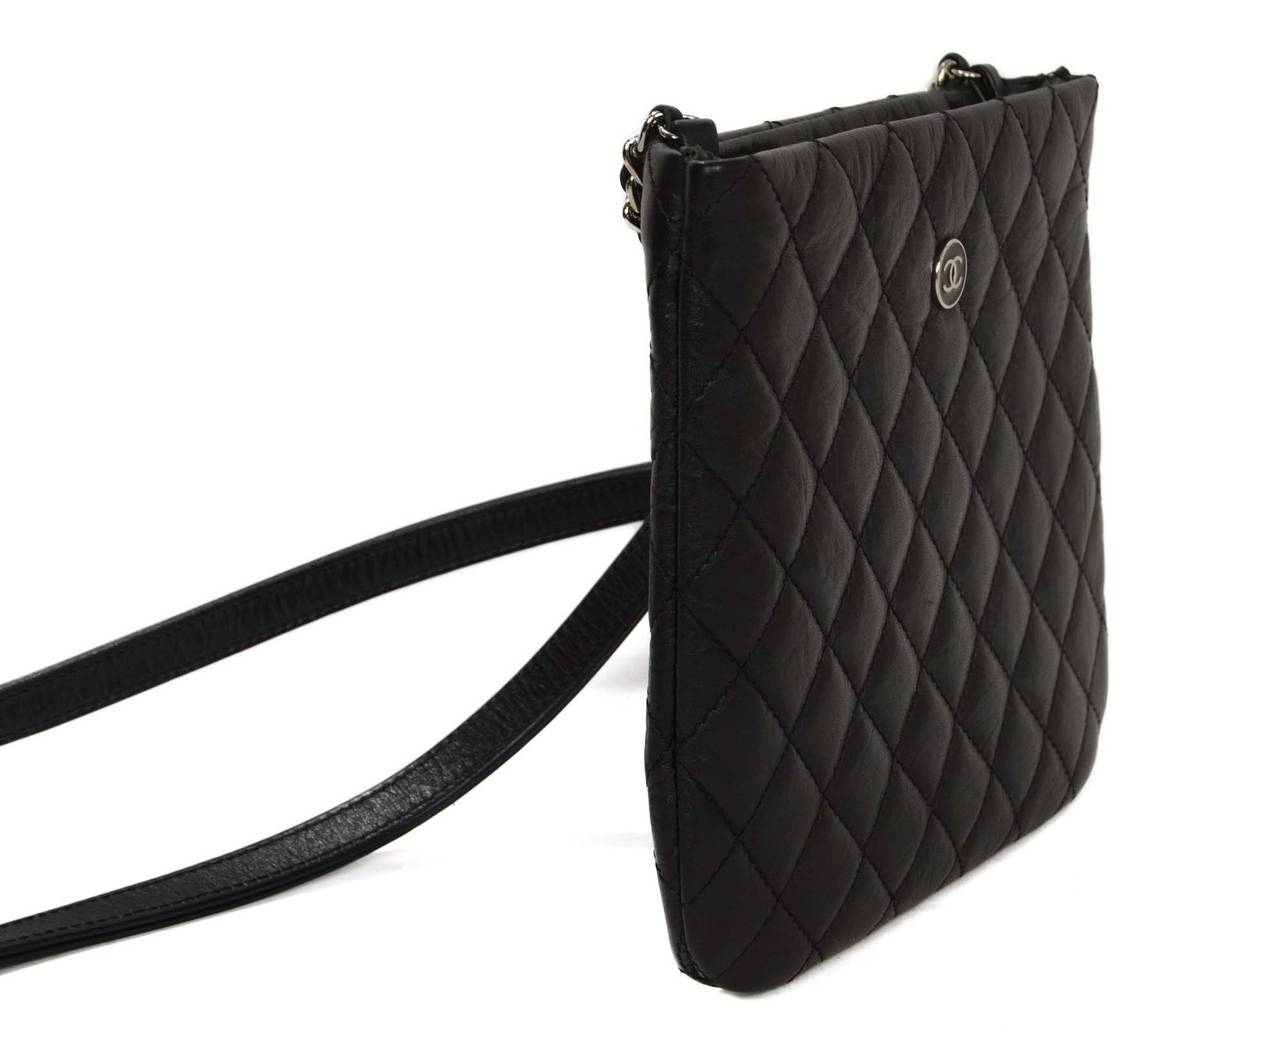 e09199106bb7 Chanel Quilted Distressed Leather Small Crossbody Bag Features small CC  emblem on front of bag Made